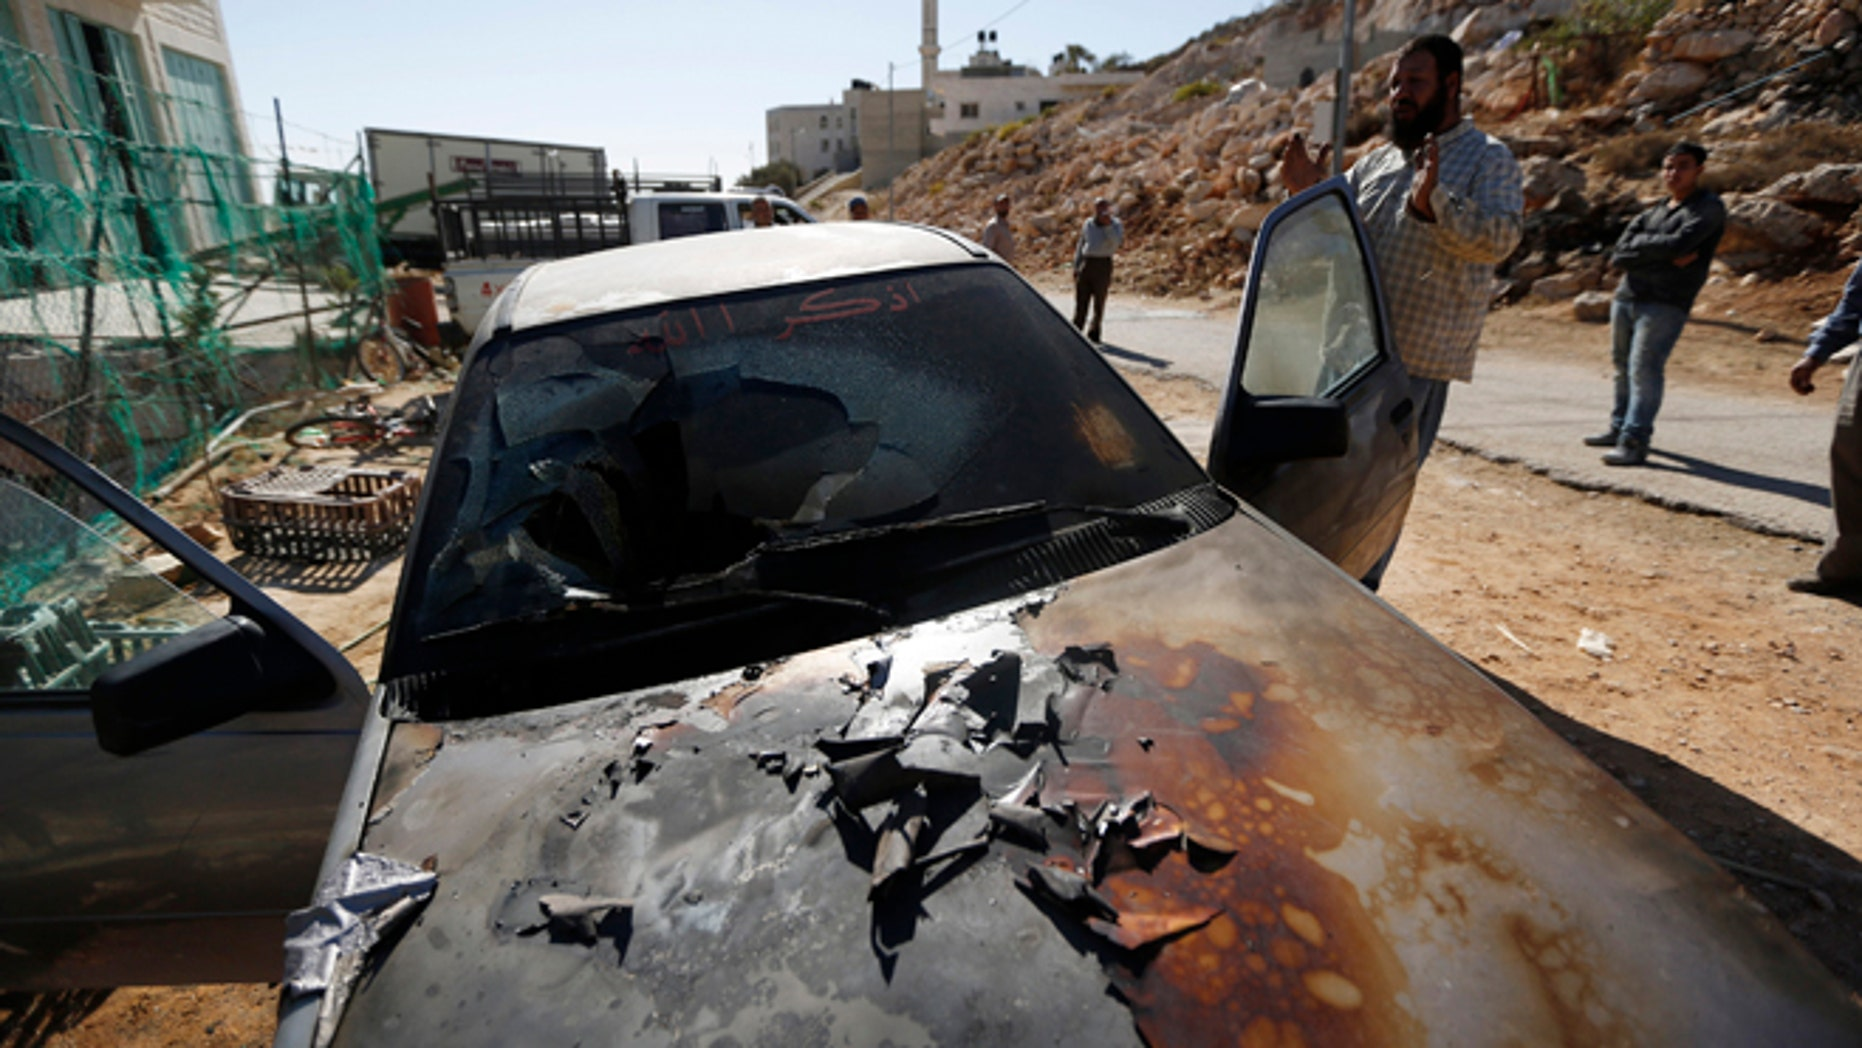 """Oct. 10: A Palestinian man gestures near a damaged car in the West Bank village of Burka, near Ramallah. An Israeli police spokesperson said on Thursday three cars were damaged overnight and the words """"Geulat Tzion loves Tomer Hazan"""" were scrawled in Hebrew on a wall of the mosque. Geulat Tzion is an illegal Jewish settler-outpost in the West Bank where structures were demolished by Israeli forces a day earlier and Tomer Hazan is an Israeli soldier who was killed by a Palestinian on September 21."""